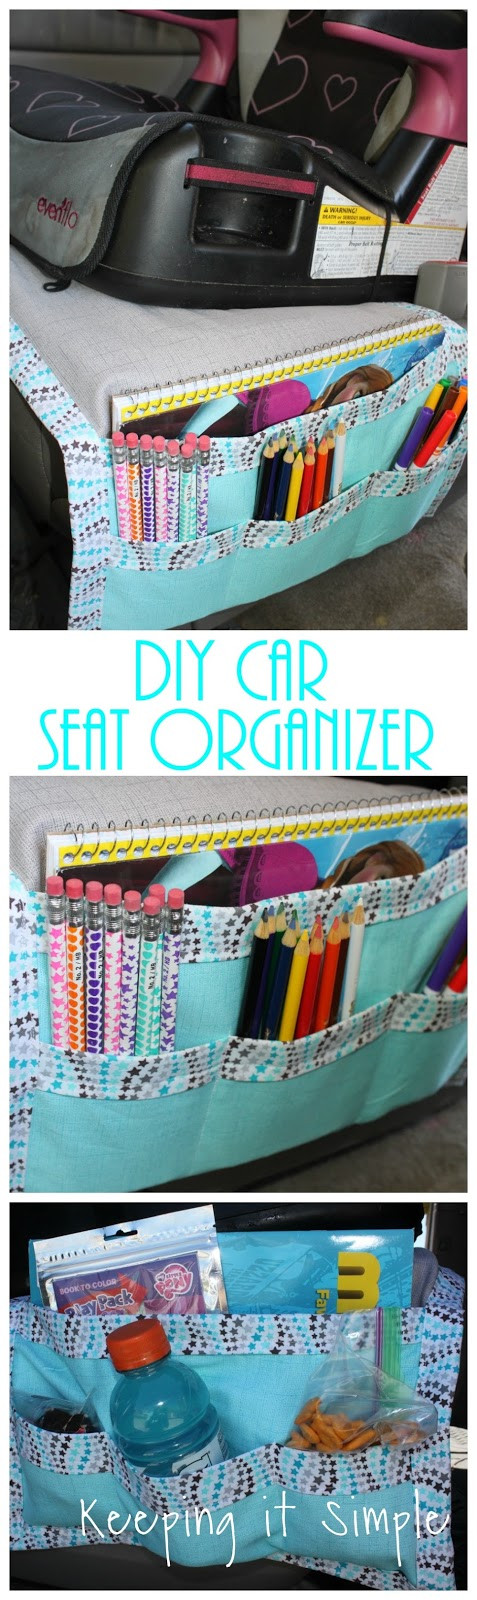 DIY Car Organizer  DIY Car Seat Organizer for Kids Snacks and Coloring